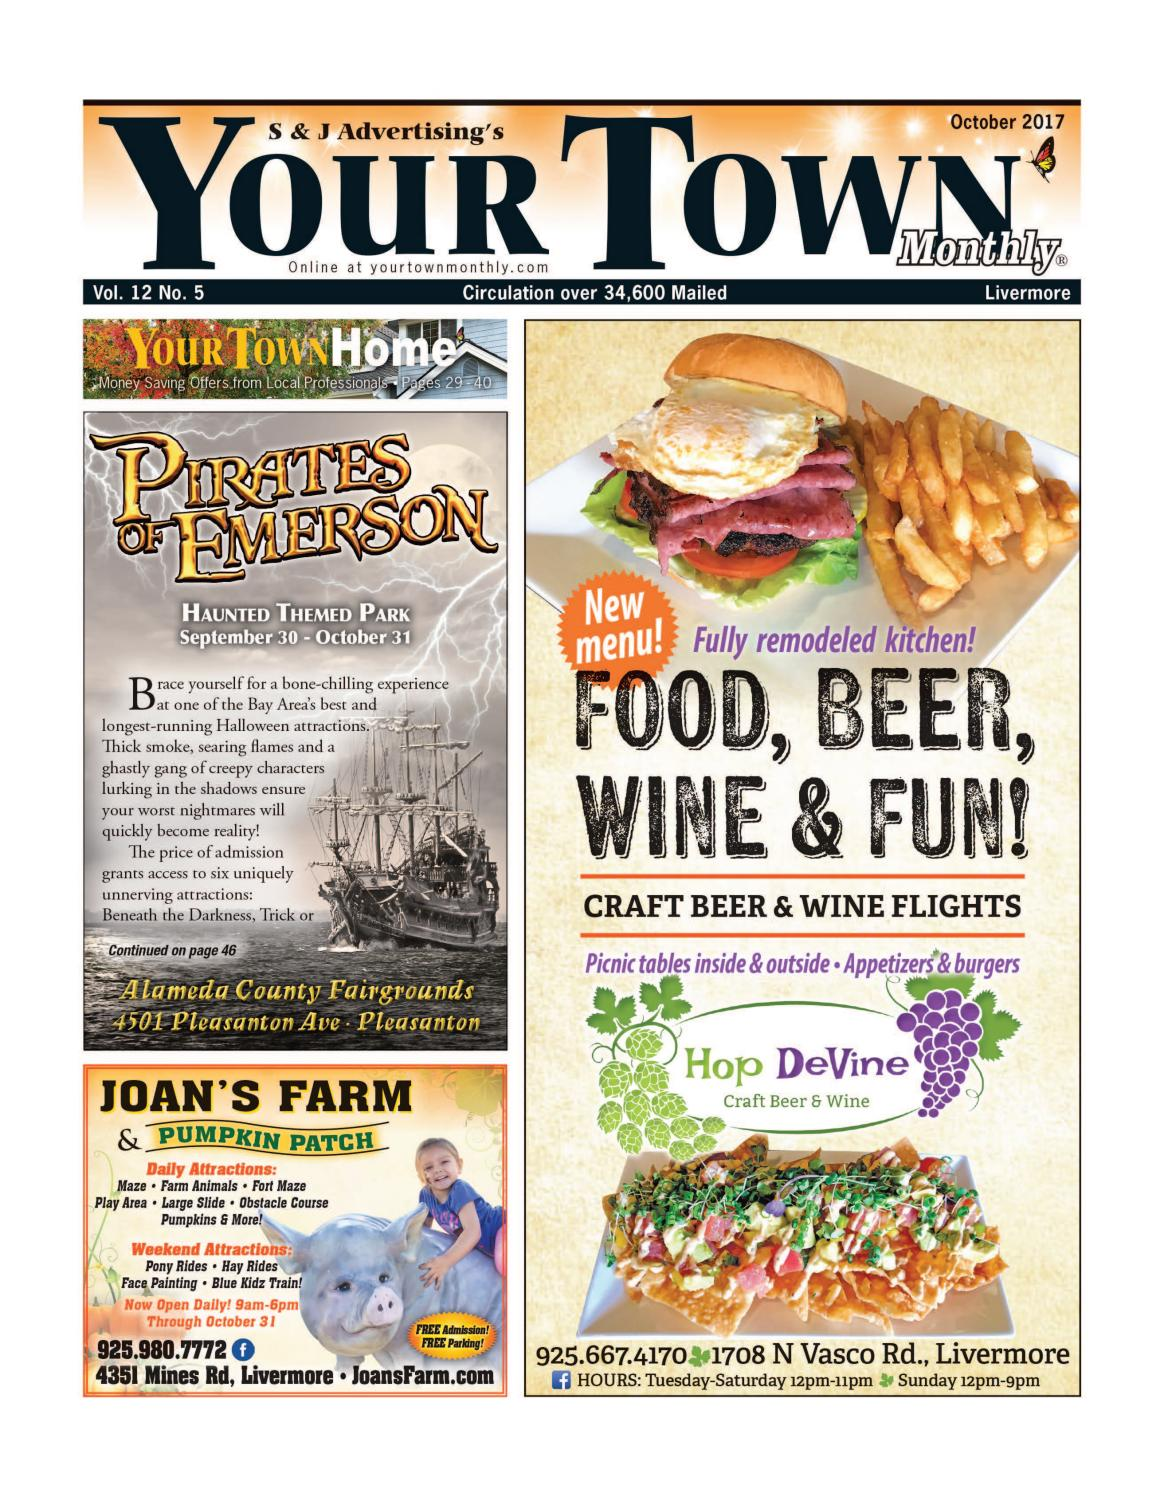 Your Town Monthly: Livermore October 2017 by Your Town